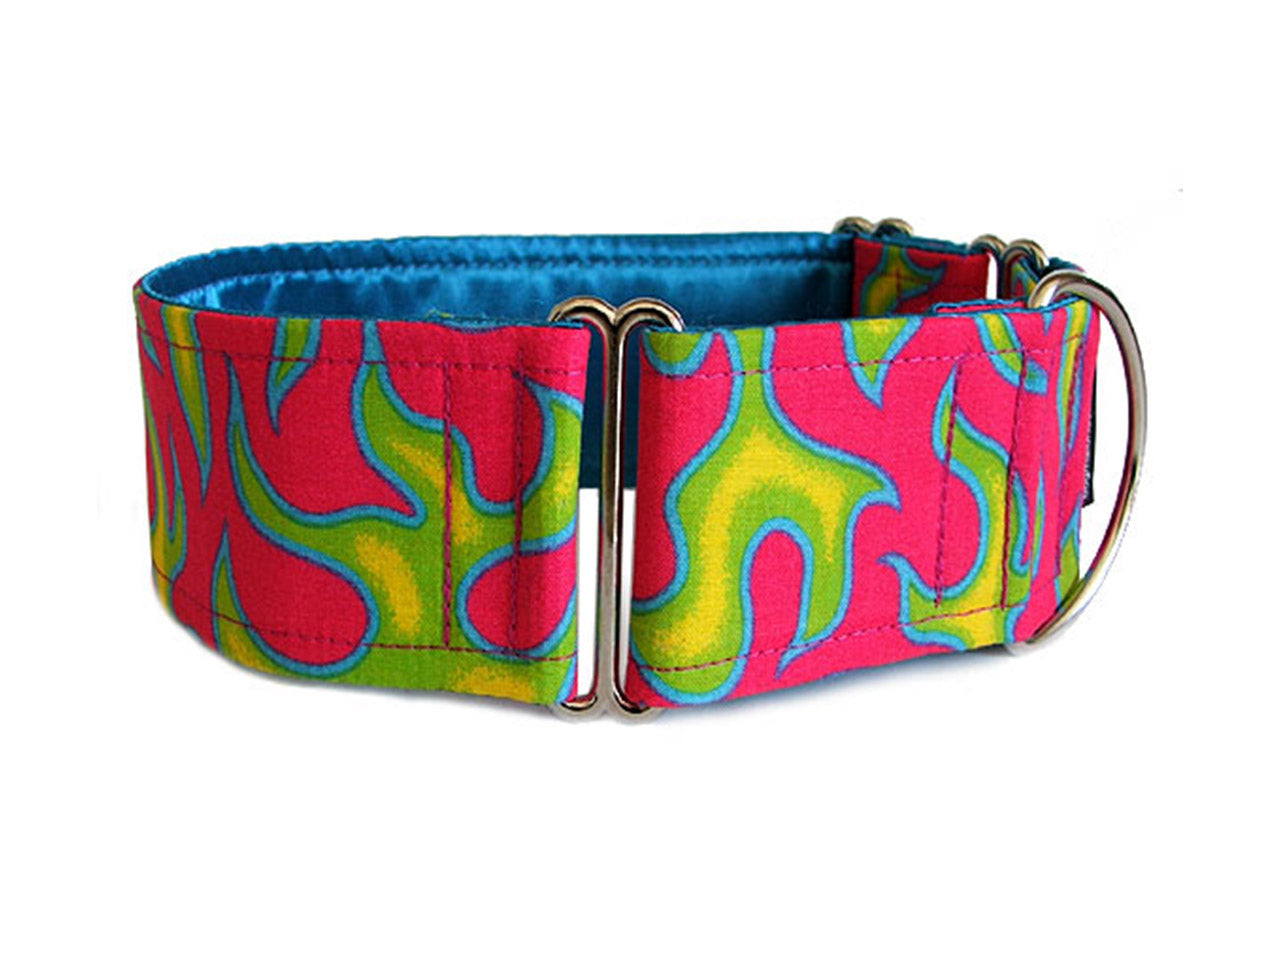 Sizzling green flames on super-hot pink are a hot accessory for your cool pup!